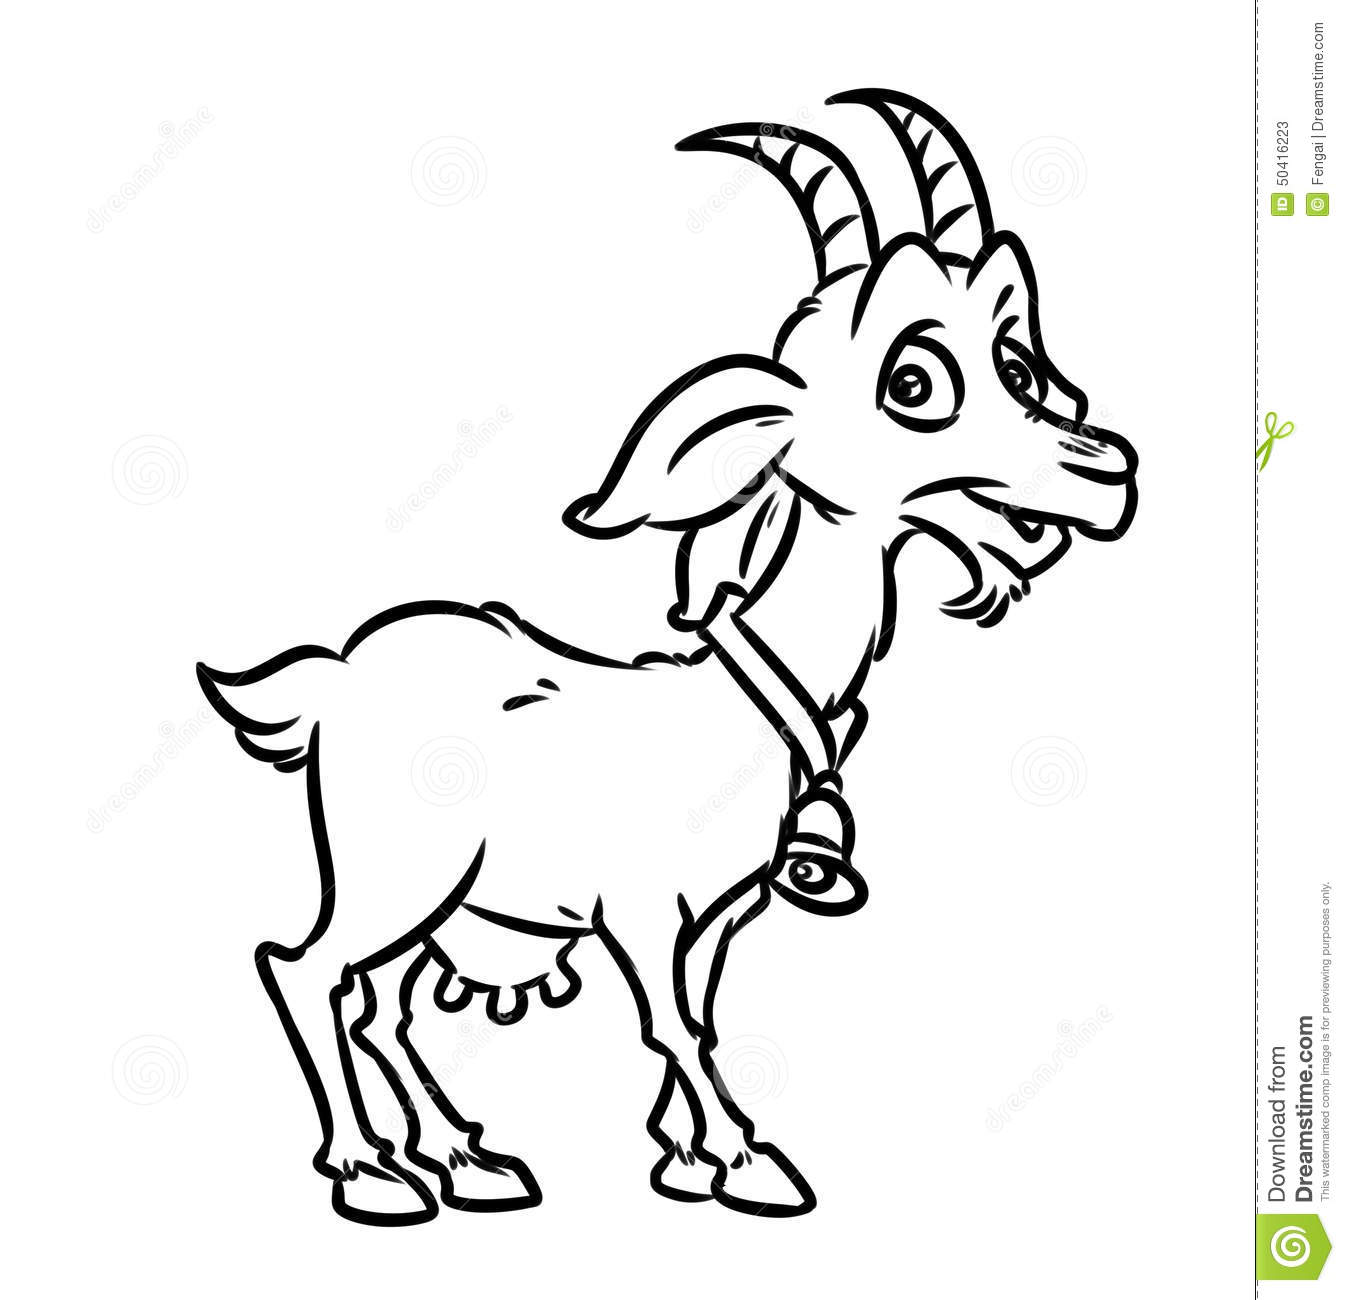 coloring pages goat - Coloring Page Goat